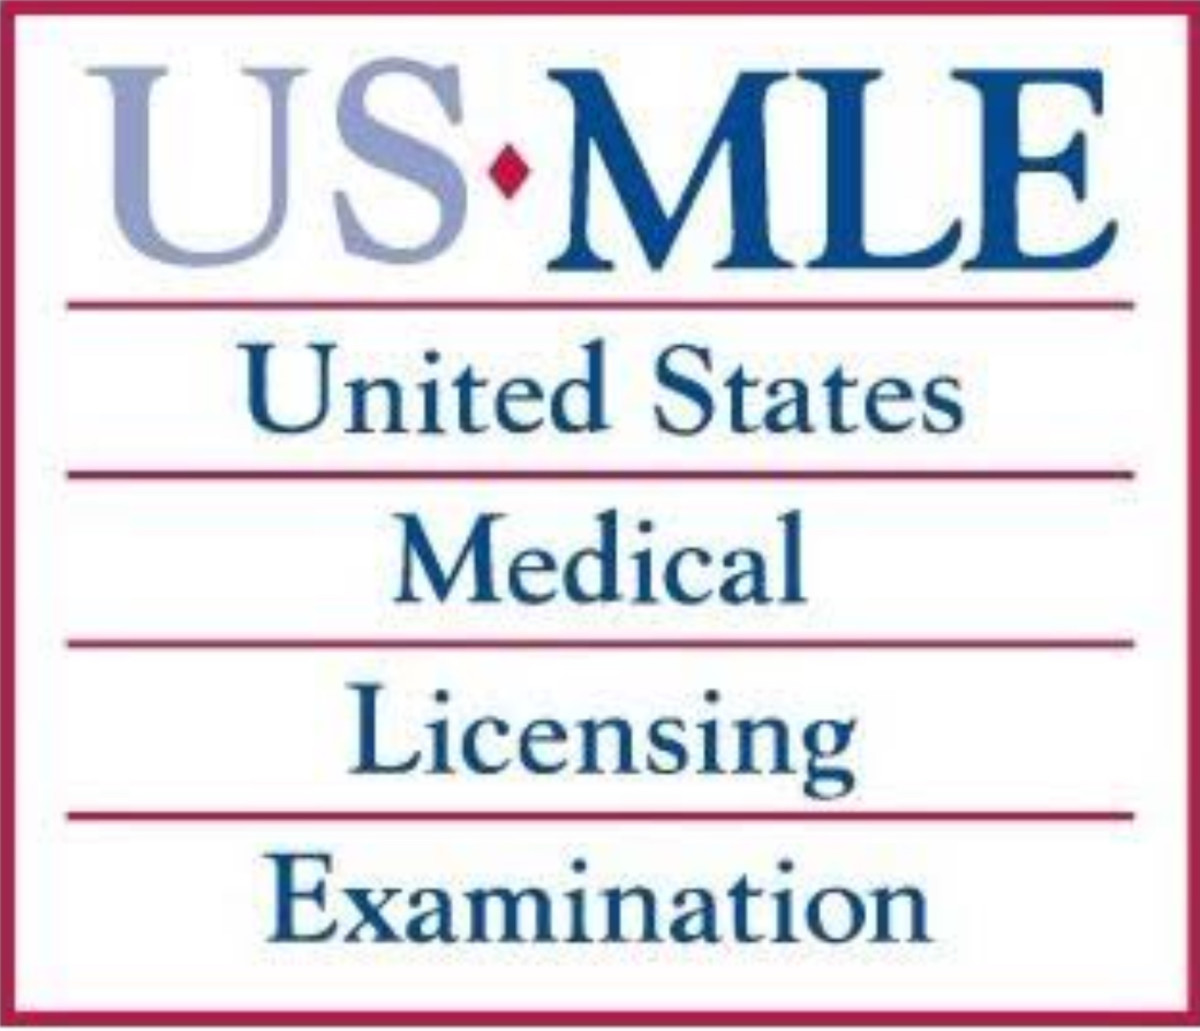 The USMLE Experience -Indian Medical Student Edition